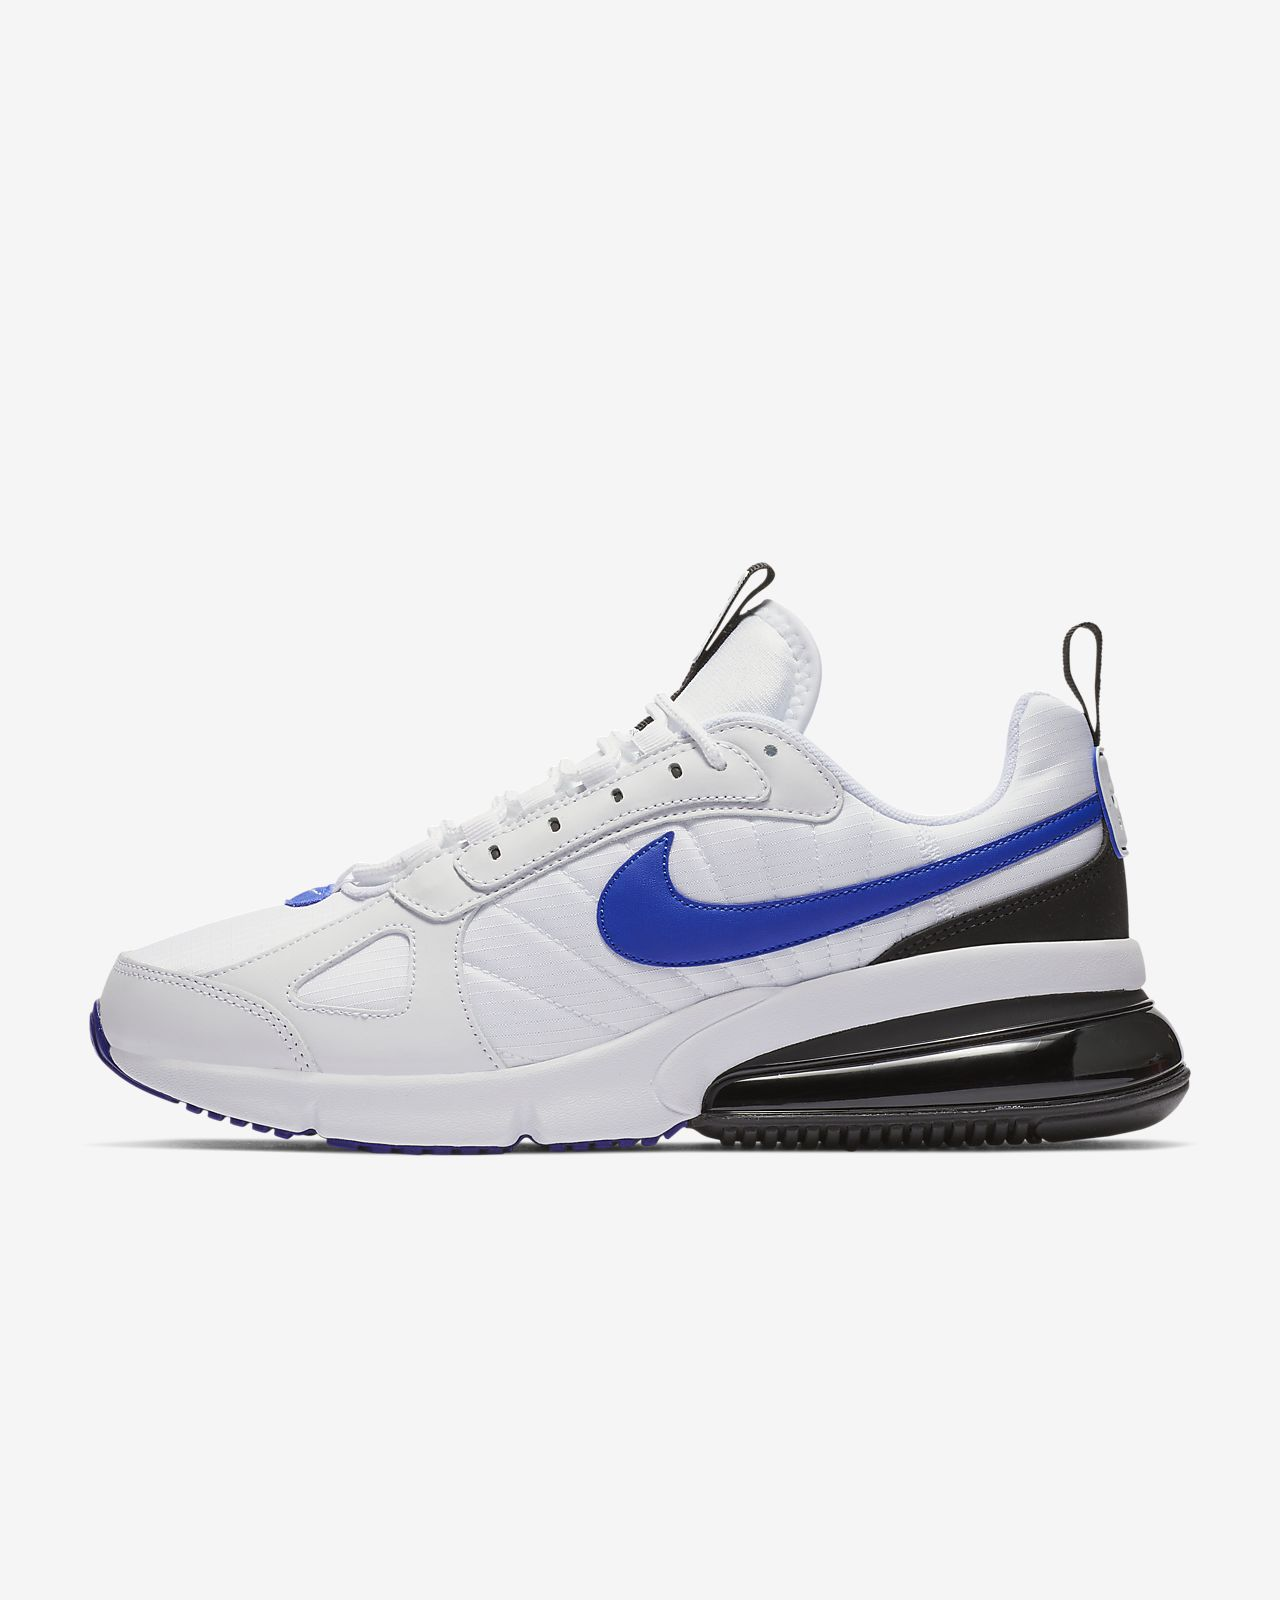 new product 4e878 6c654 ... Sko Nike Air Max 270 Futura för män